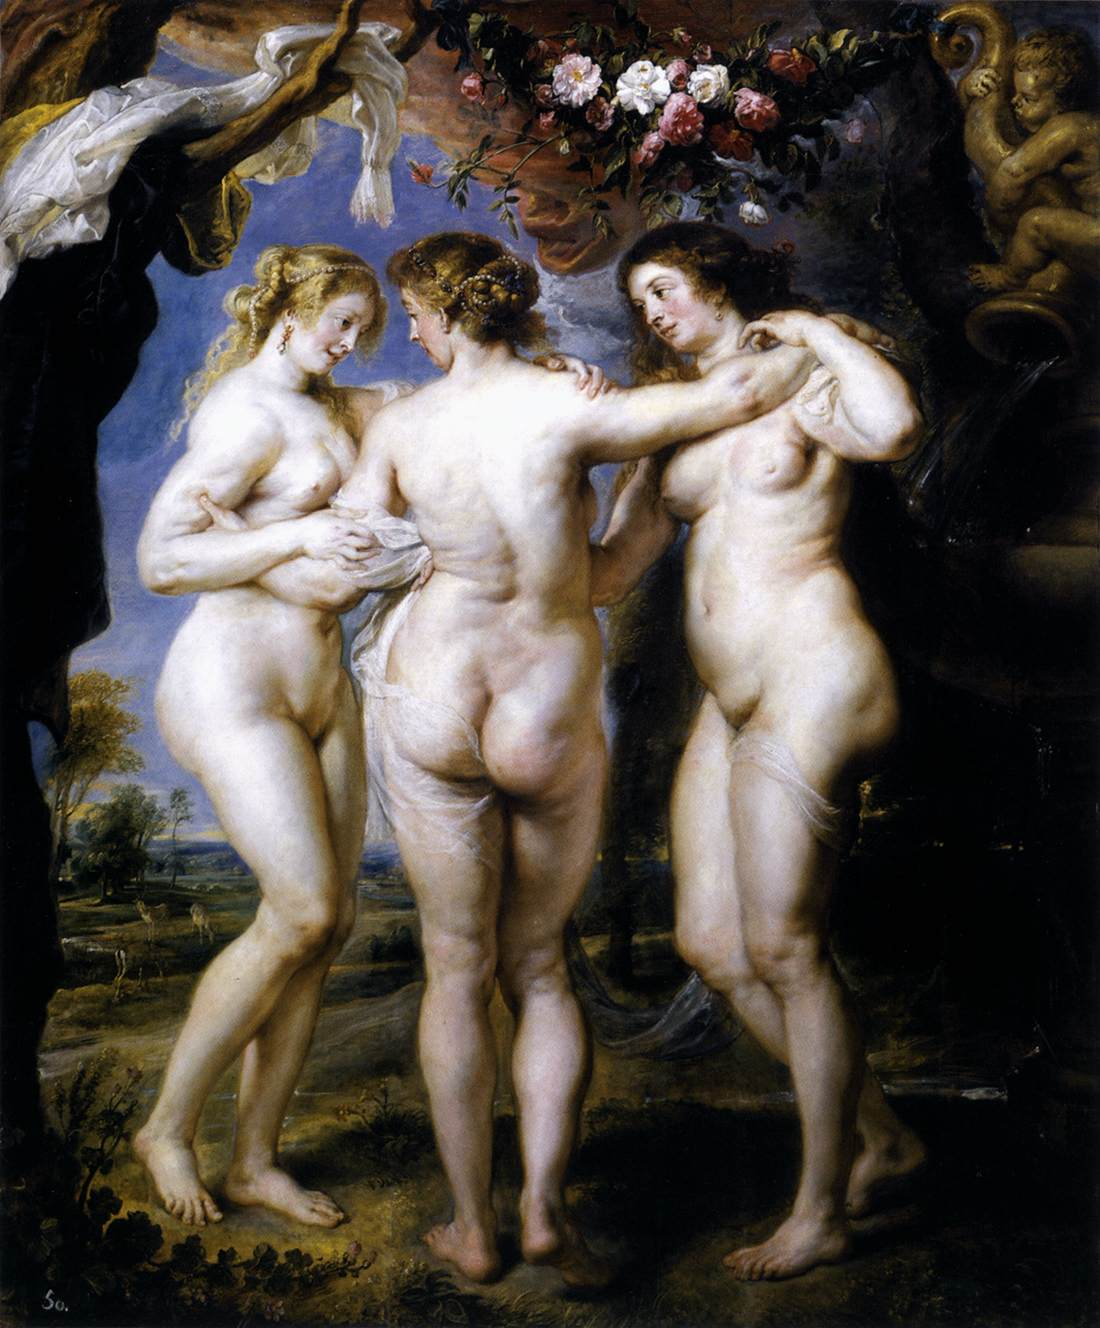 http://uploads4.wikipaintings.org/images/peter-paul-rubens/the-three-graces.jpg